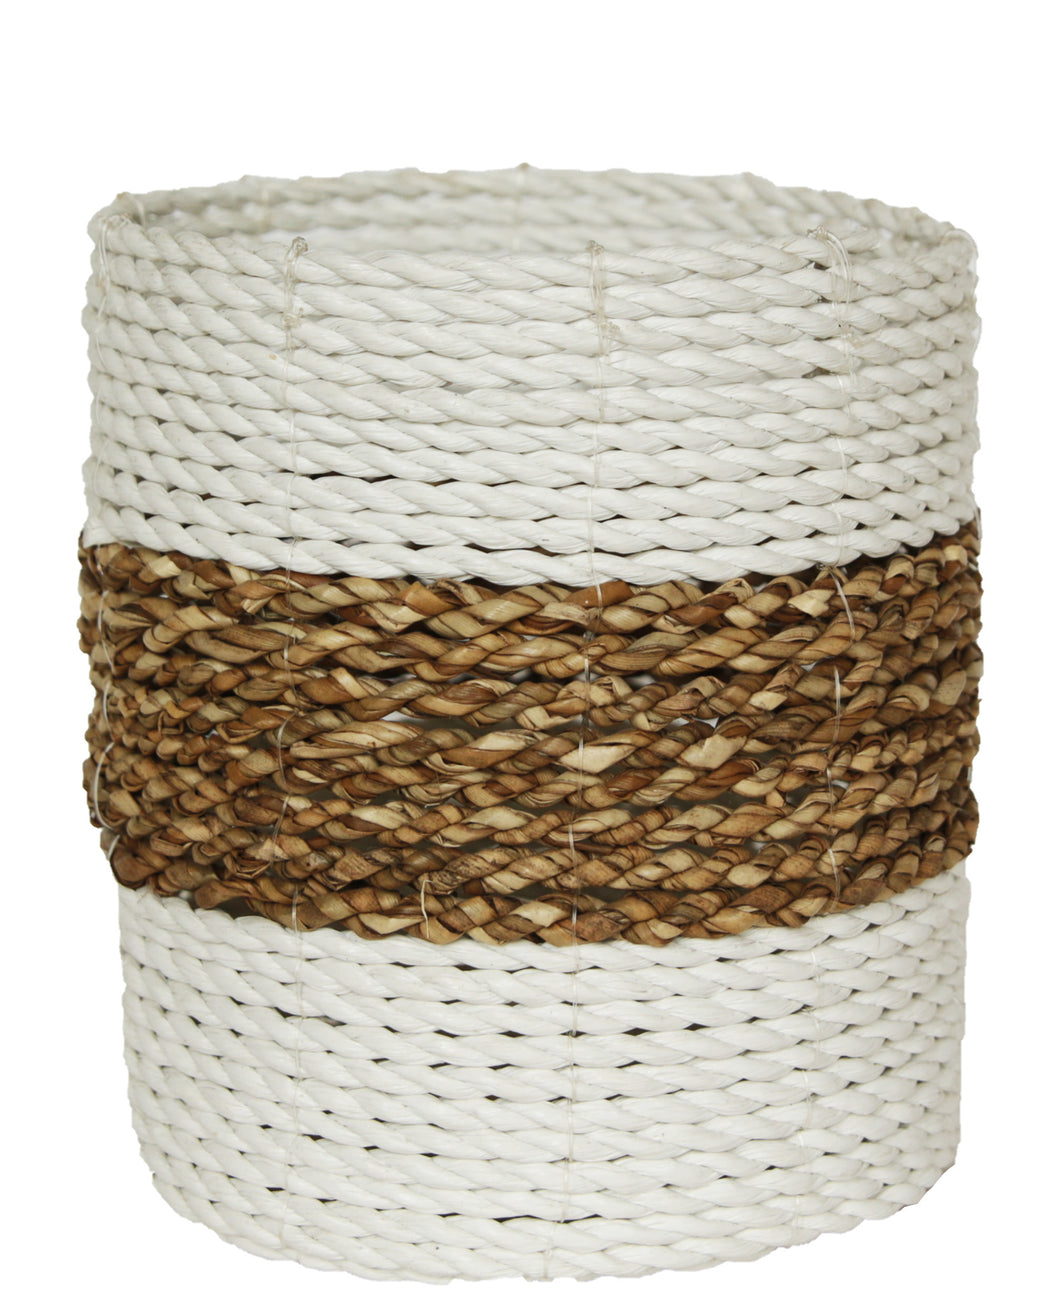 WOVEN RATTAN NATURAL AND WHITE BASKET MEDIUM